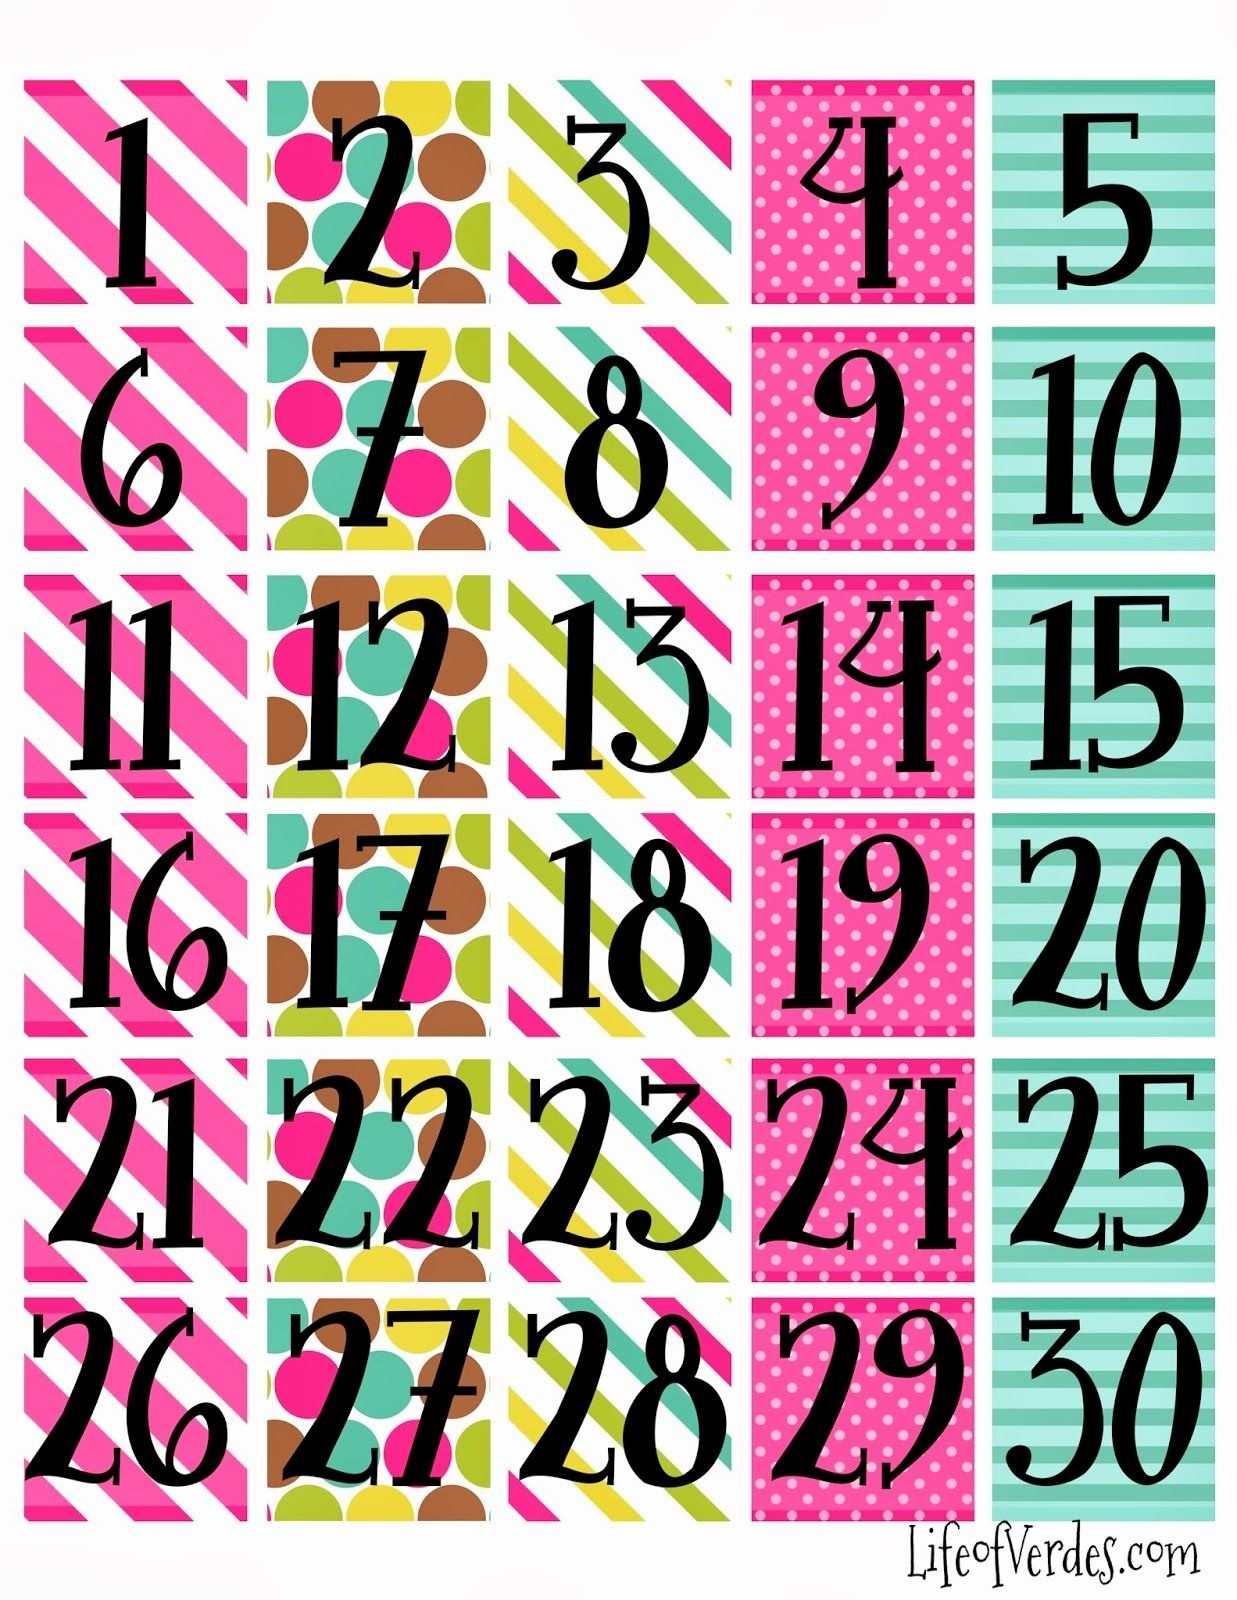 Free+Printable+Calendar+Numbers | Household Info | Pinterest  Printable Numbers 1-31 For Calendar